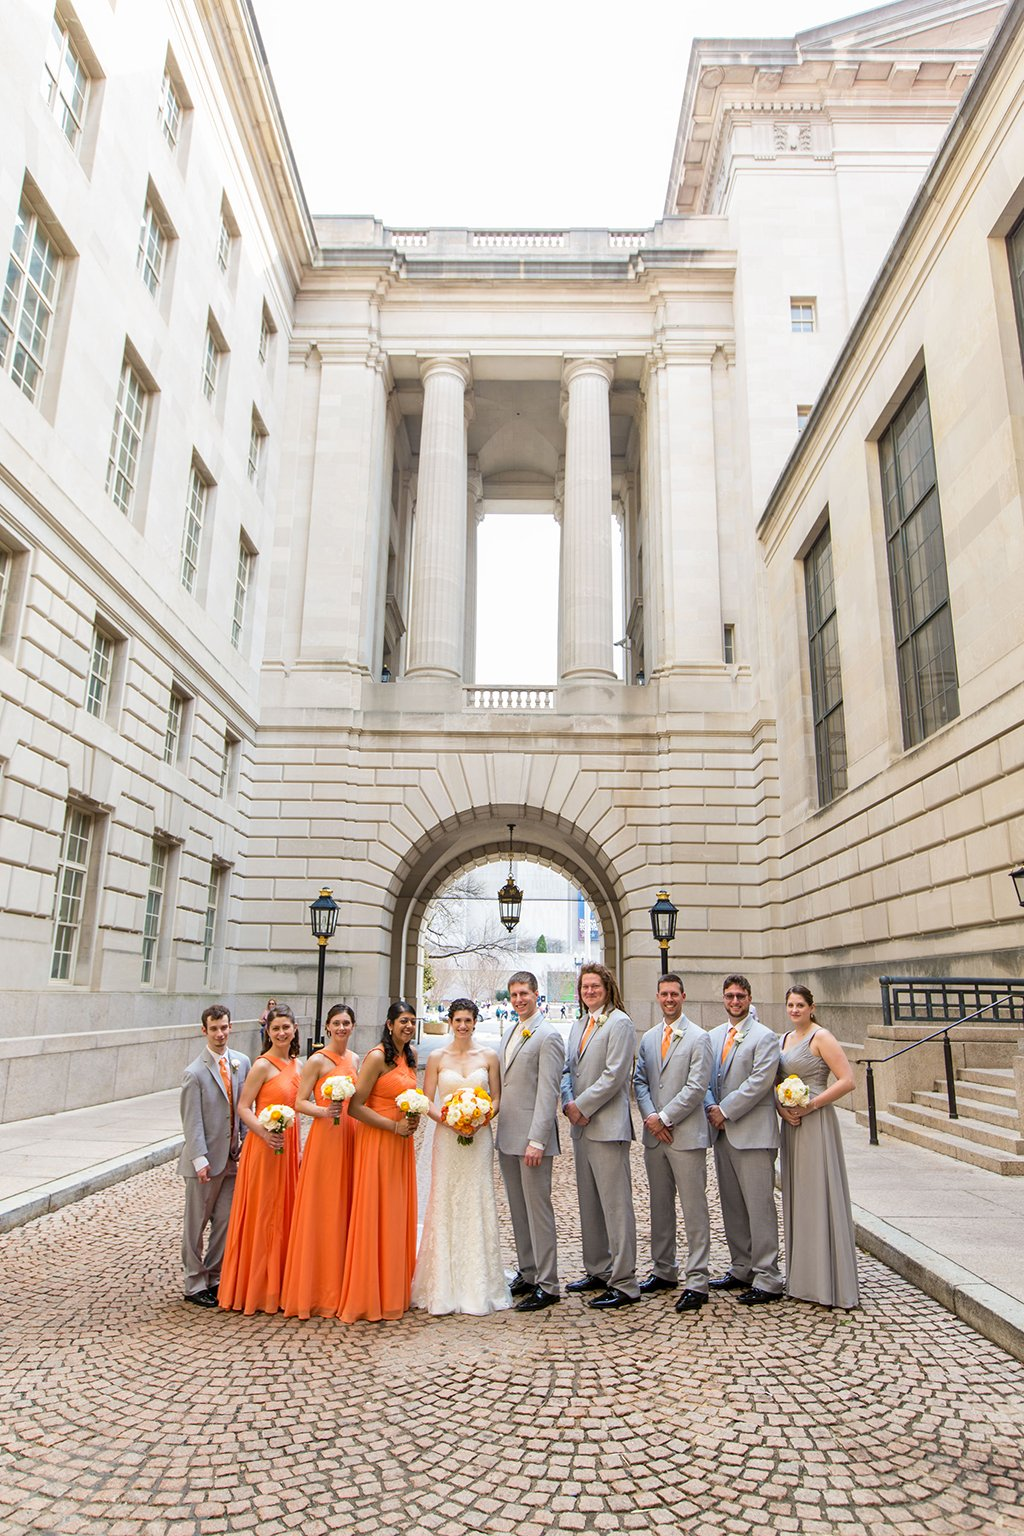 Chemistry-Themed Wedding With Periodic Table Decor In Downtown DC